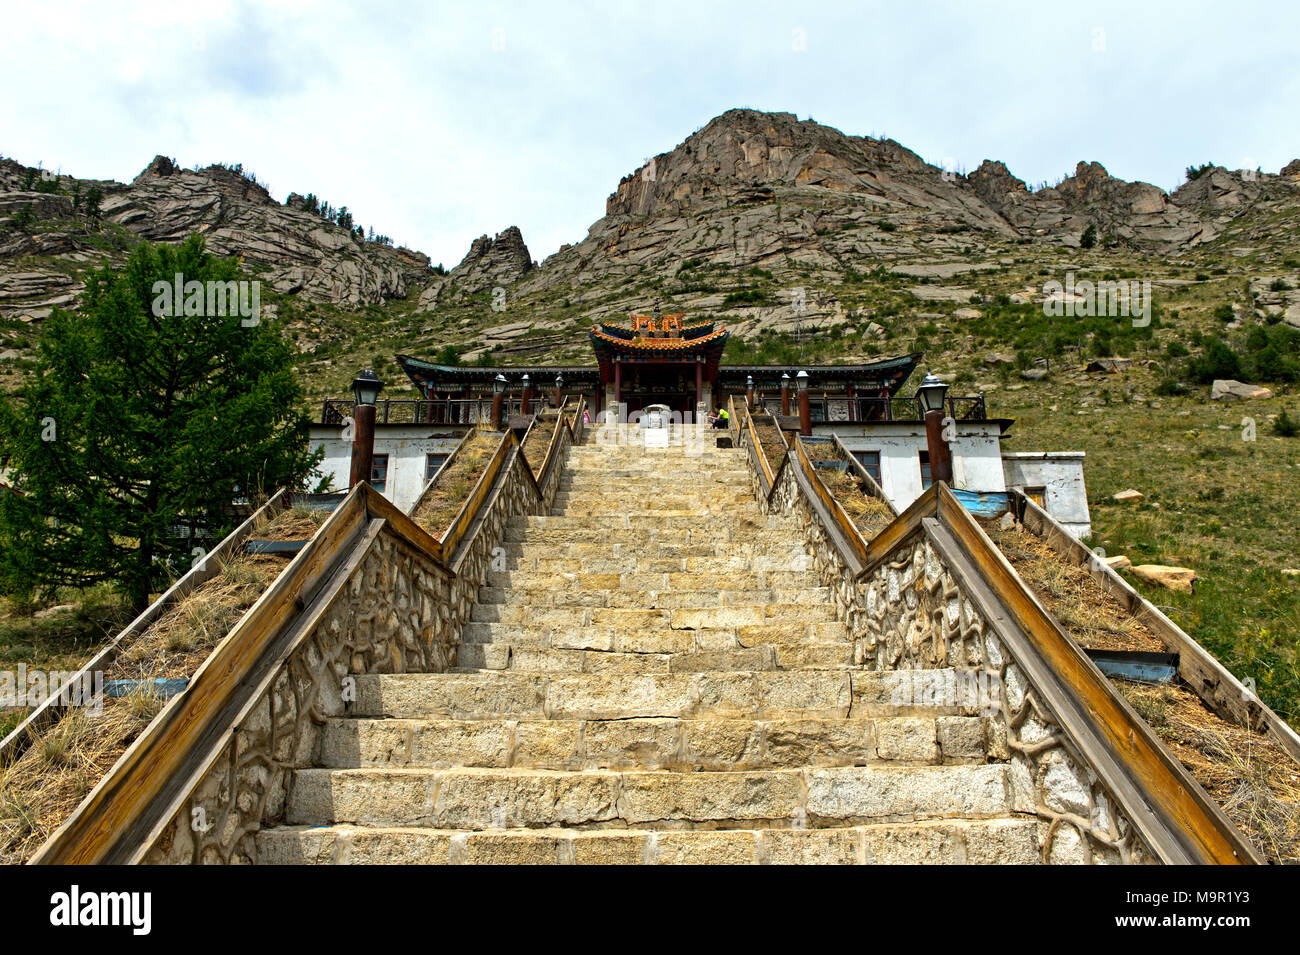 Stairway to the Buddhist Monastery Aryapala Initiation and Meditation Centre, Gorchi-Terelj National Park, Terelj, Mongolia - Stock Image